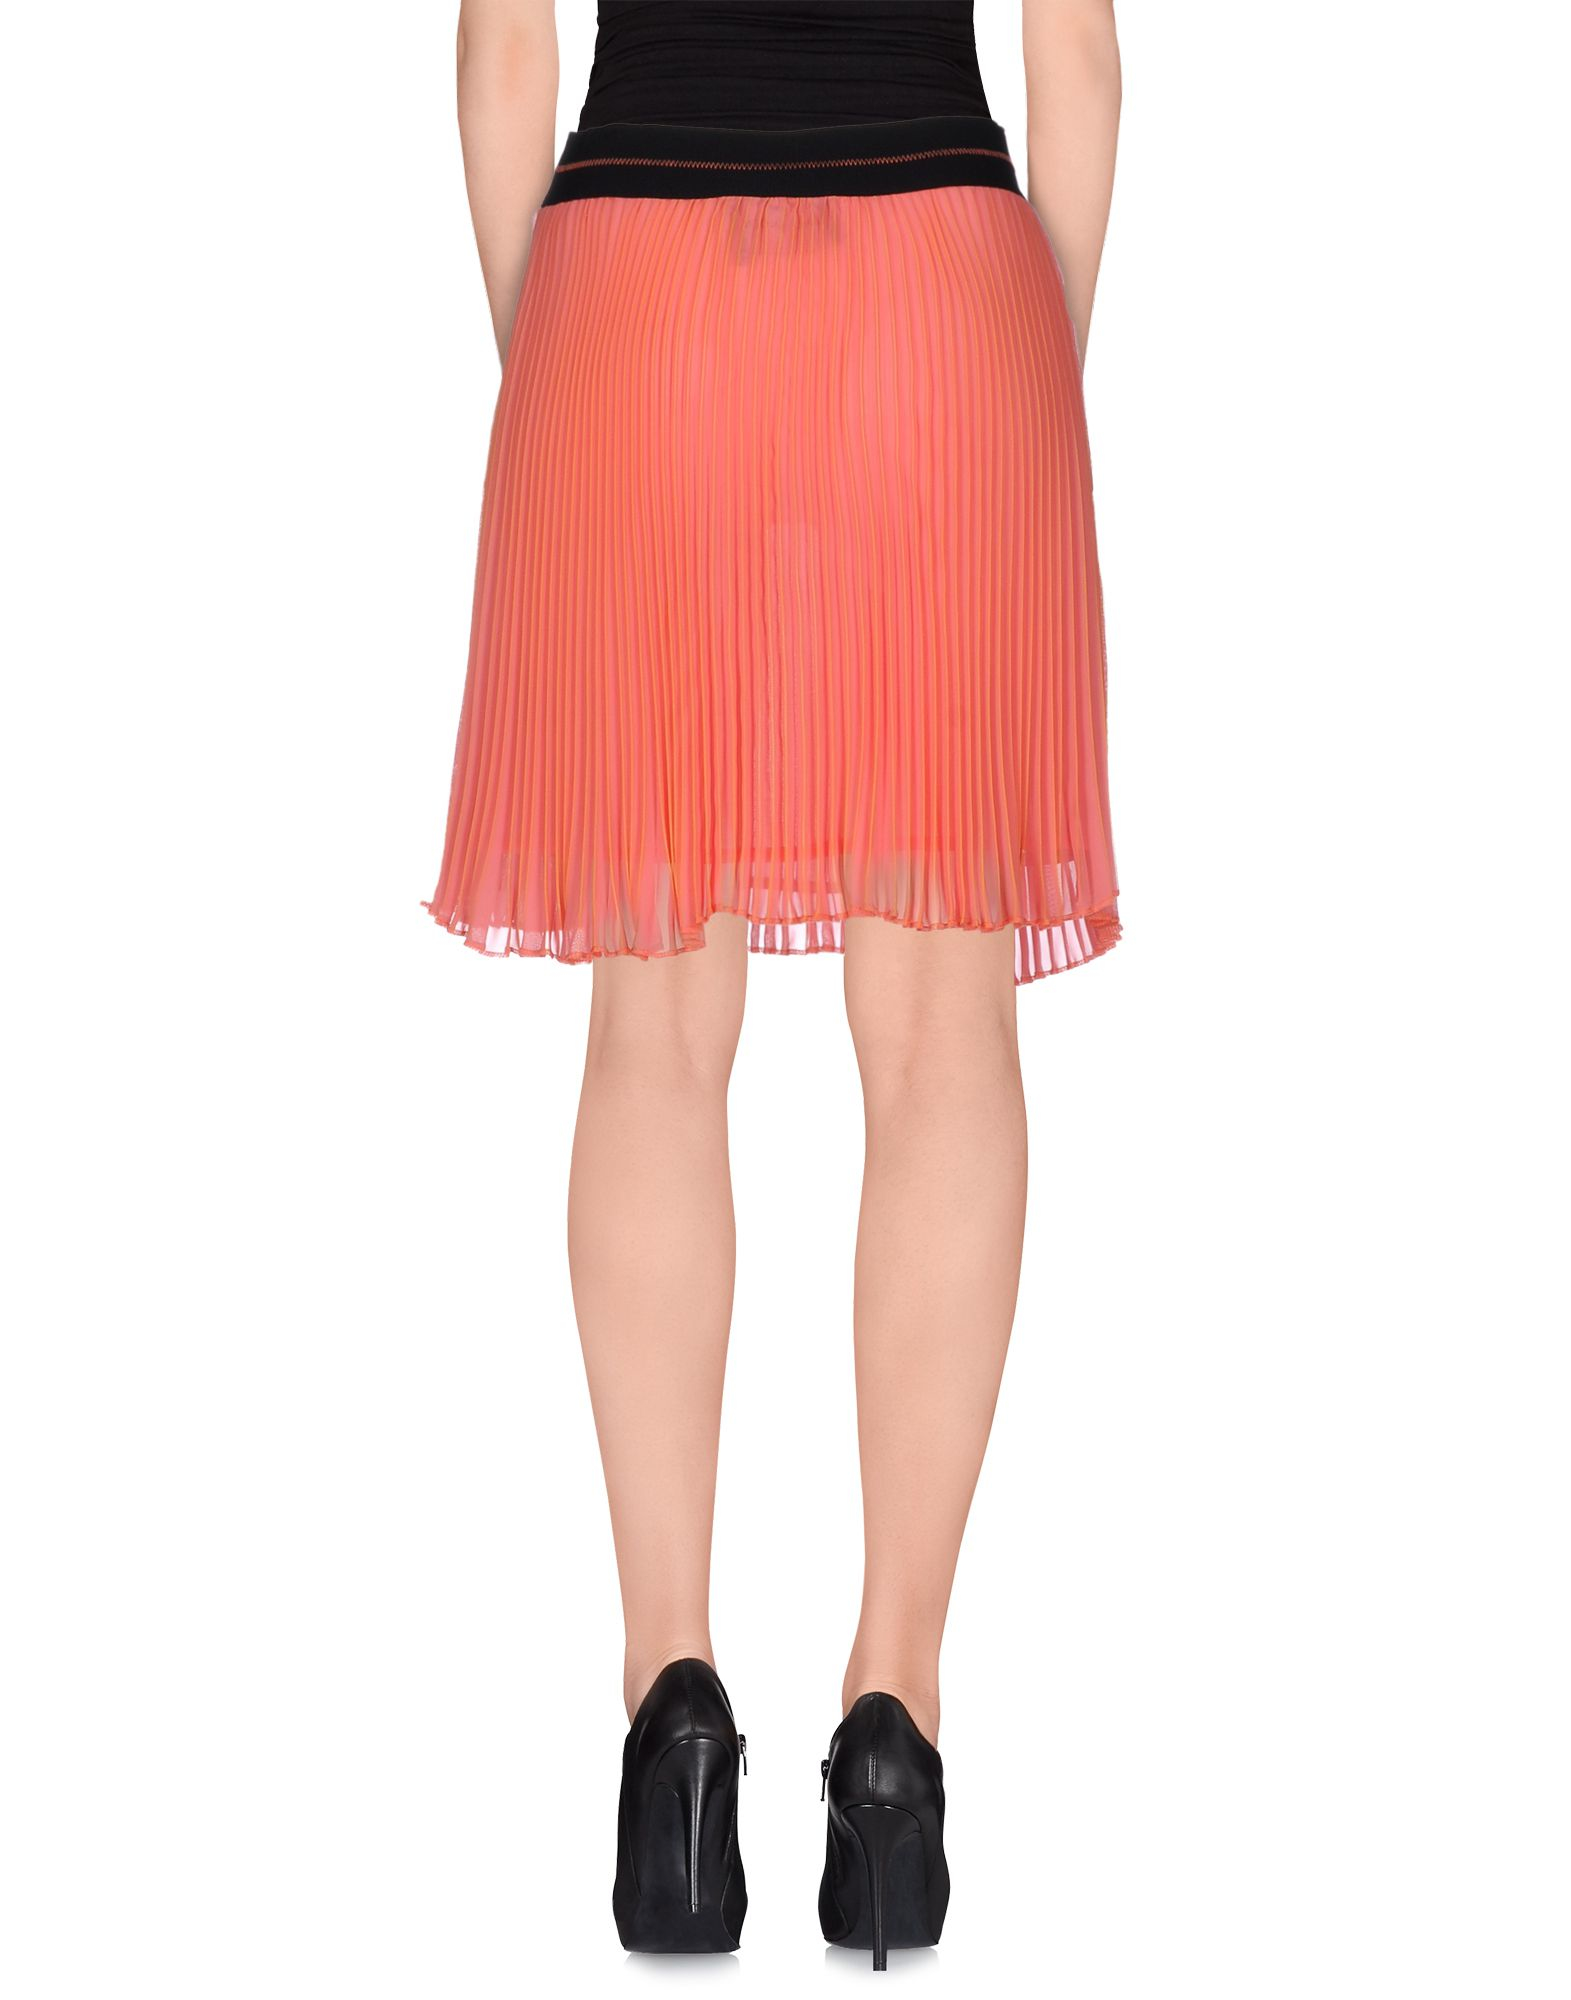 marco bologna knee length skirt in pink coral